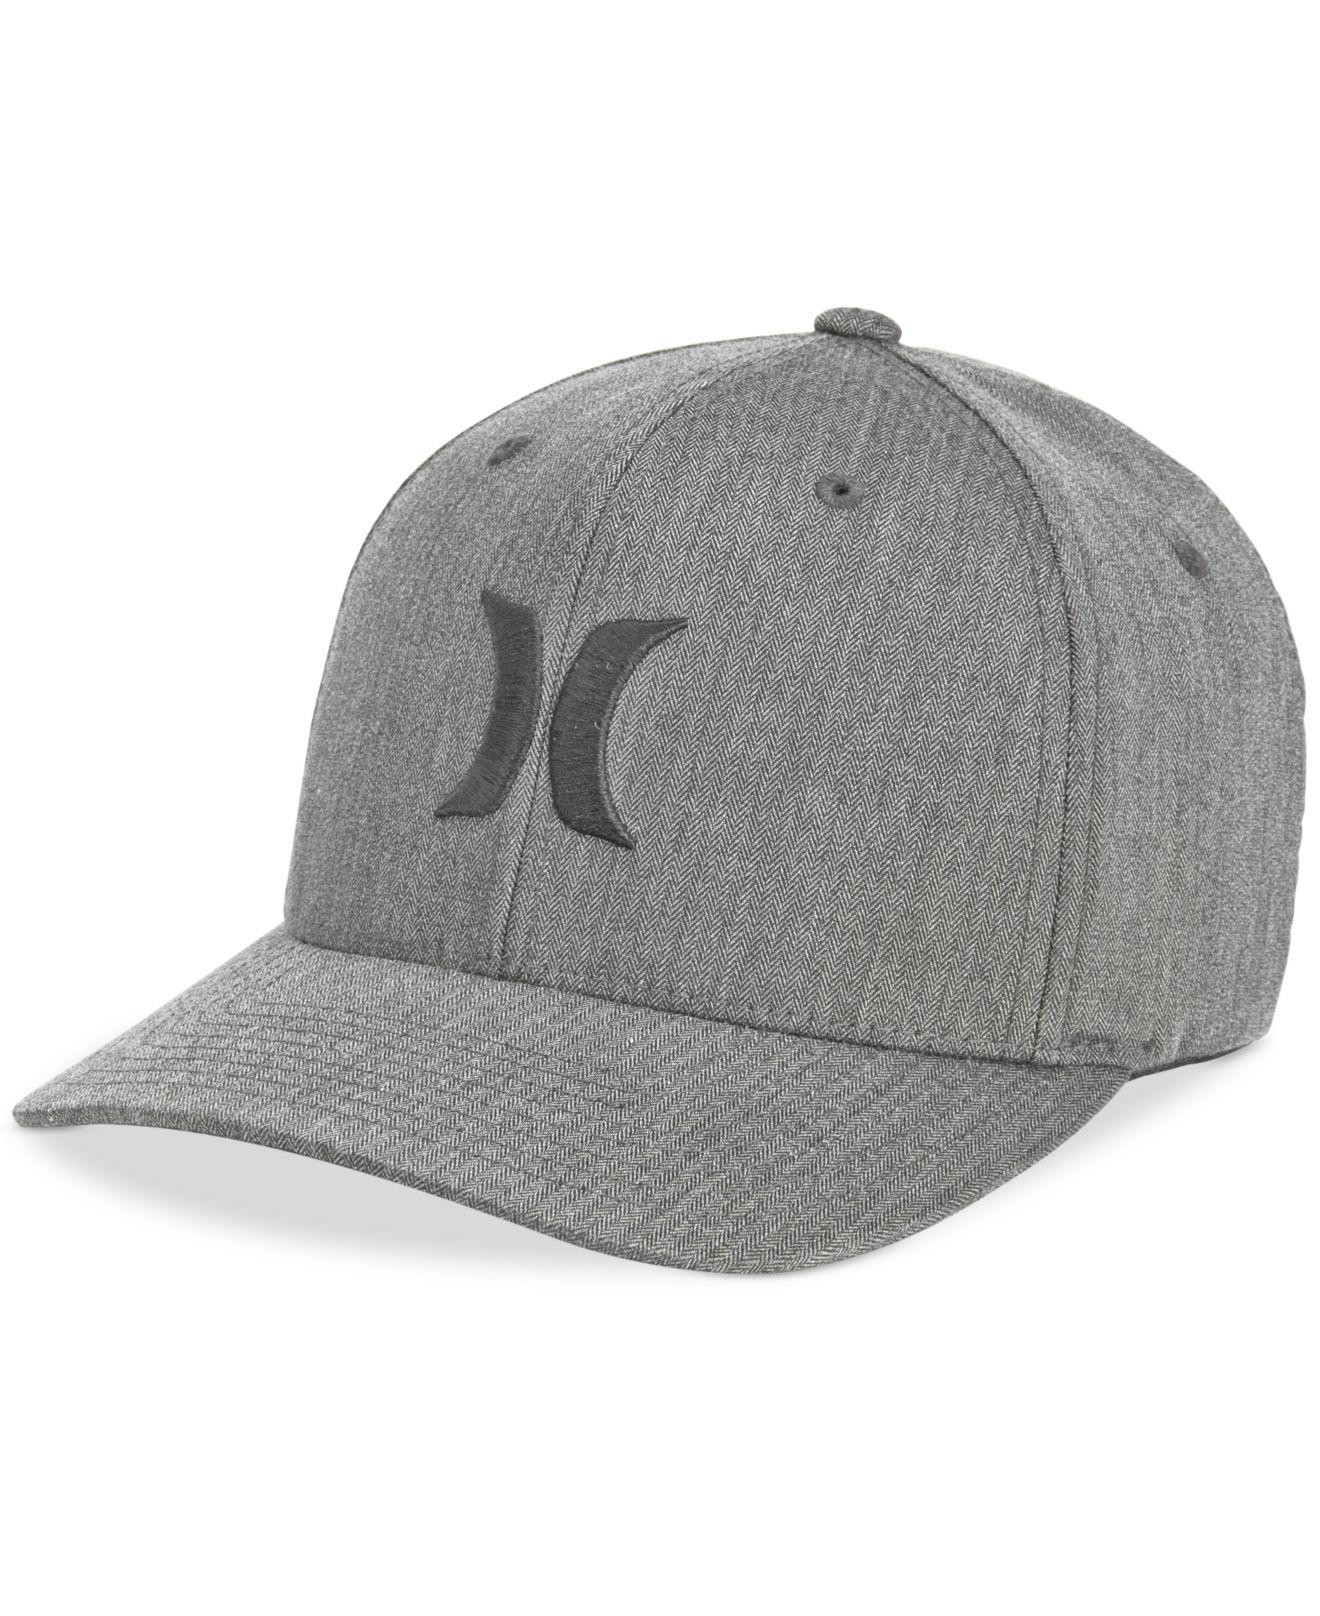 87e6275f4fb47 Lyst - Hurley Men s One And Only Texture Flexfit Logo Hat in Gray ...